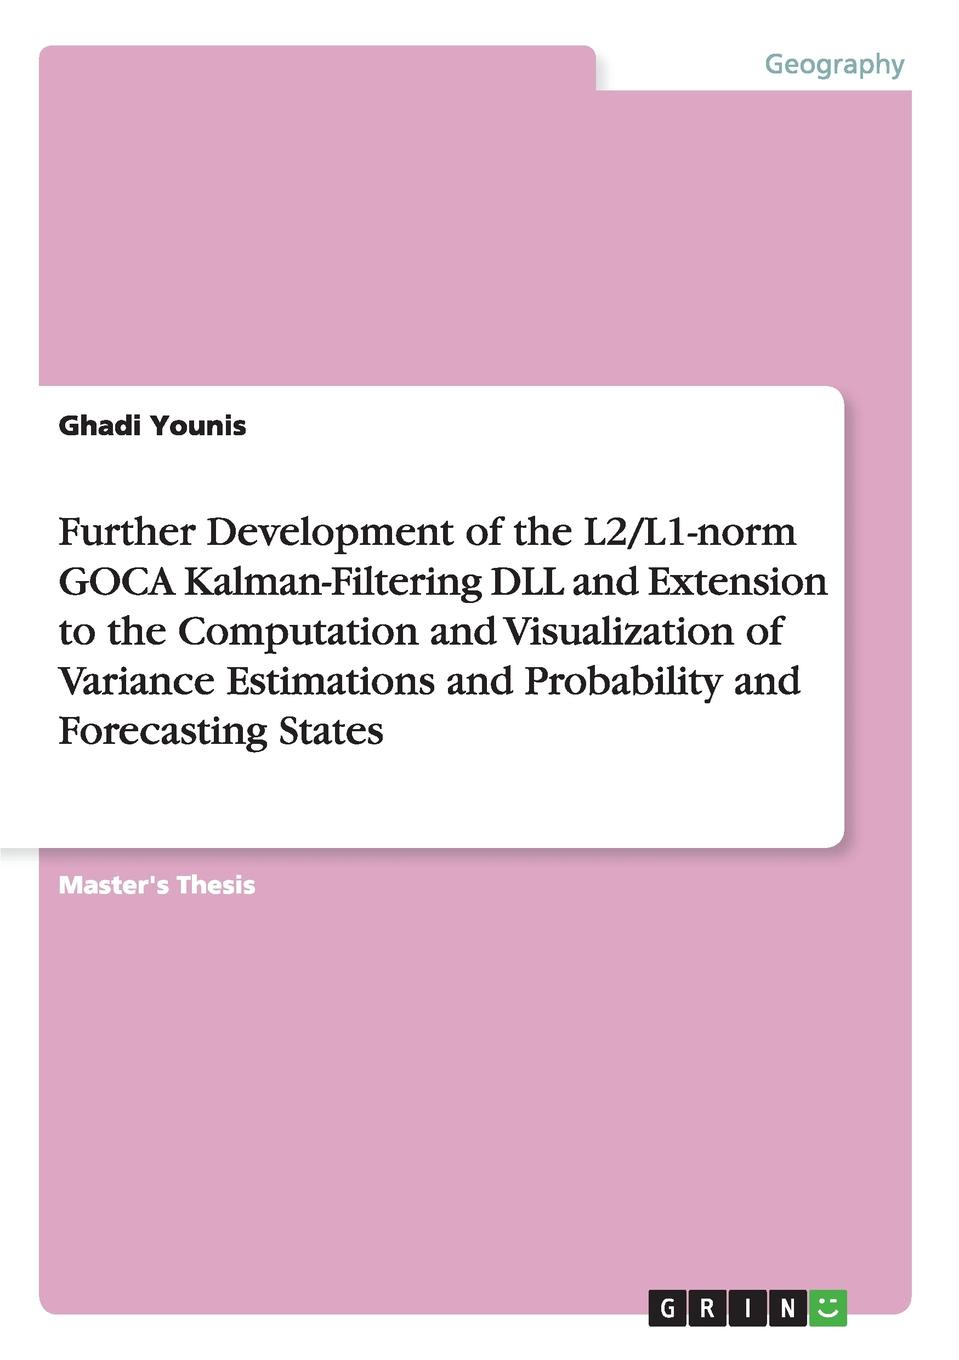 Ghadi Younis Further Development of the L2/L1-norm GOCA Kalman-Filtering DLL and Extension to the Computation and Visualization of Variance Estimations and Probability and Forecasting States недорго, оригинальная цена